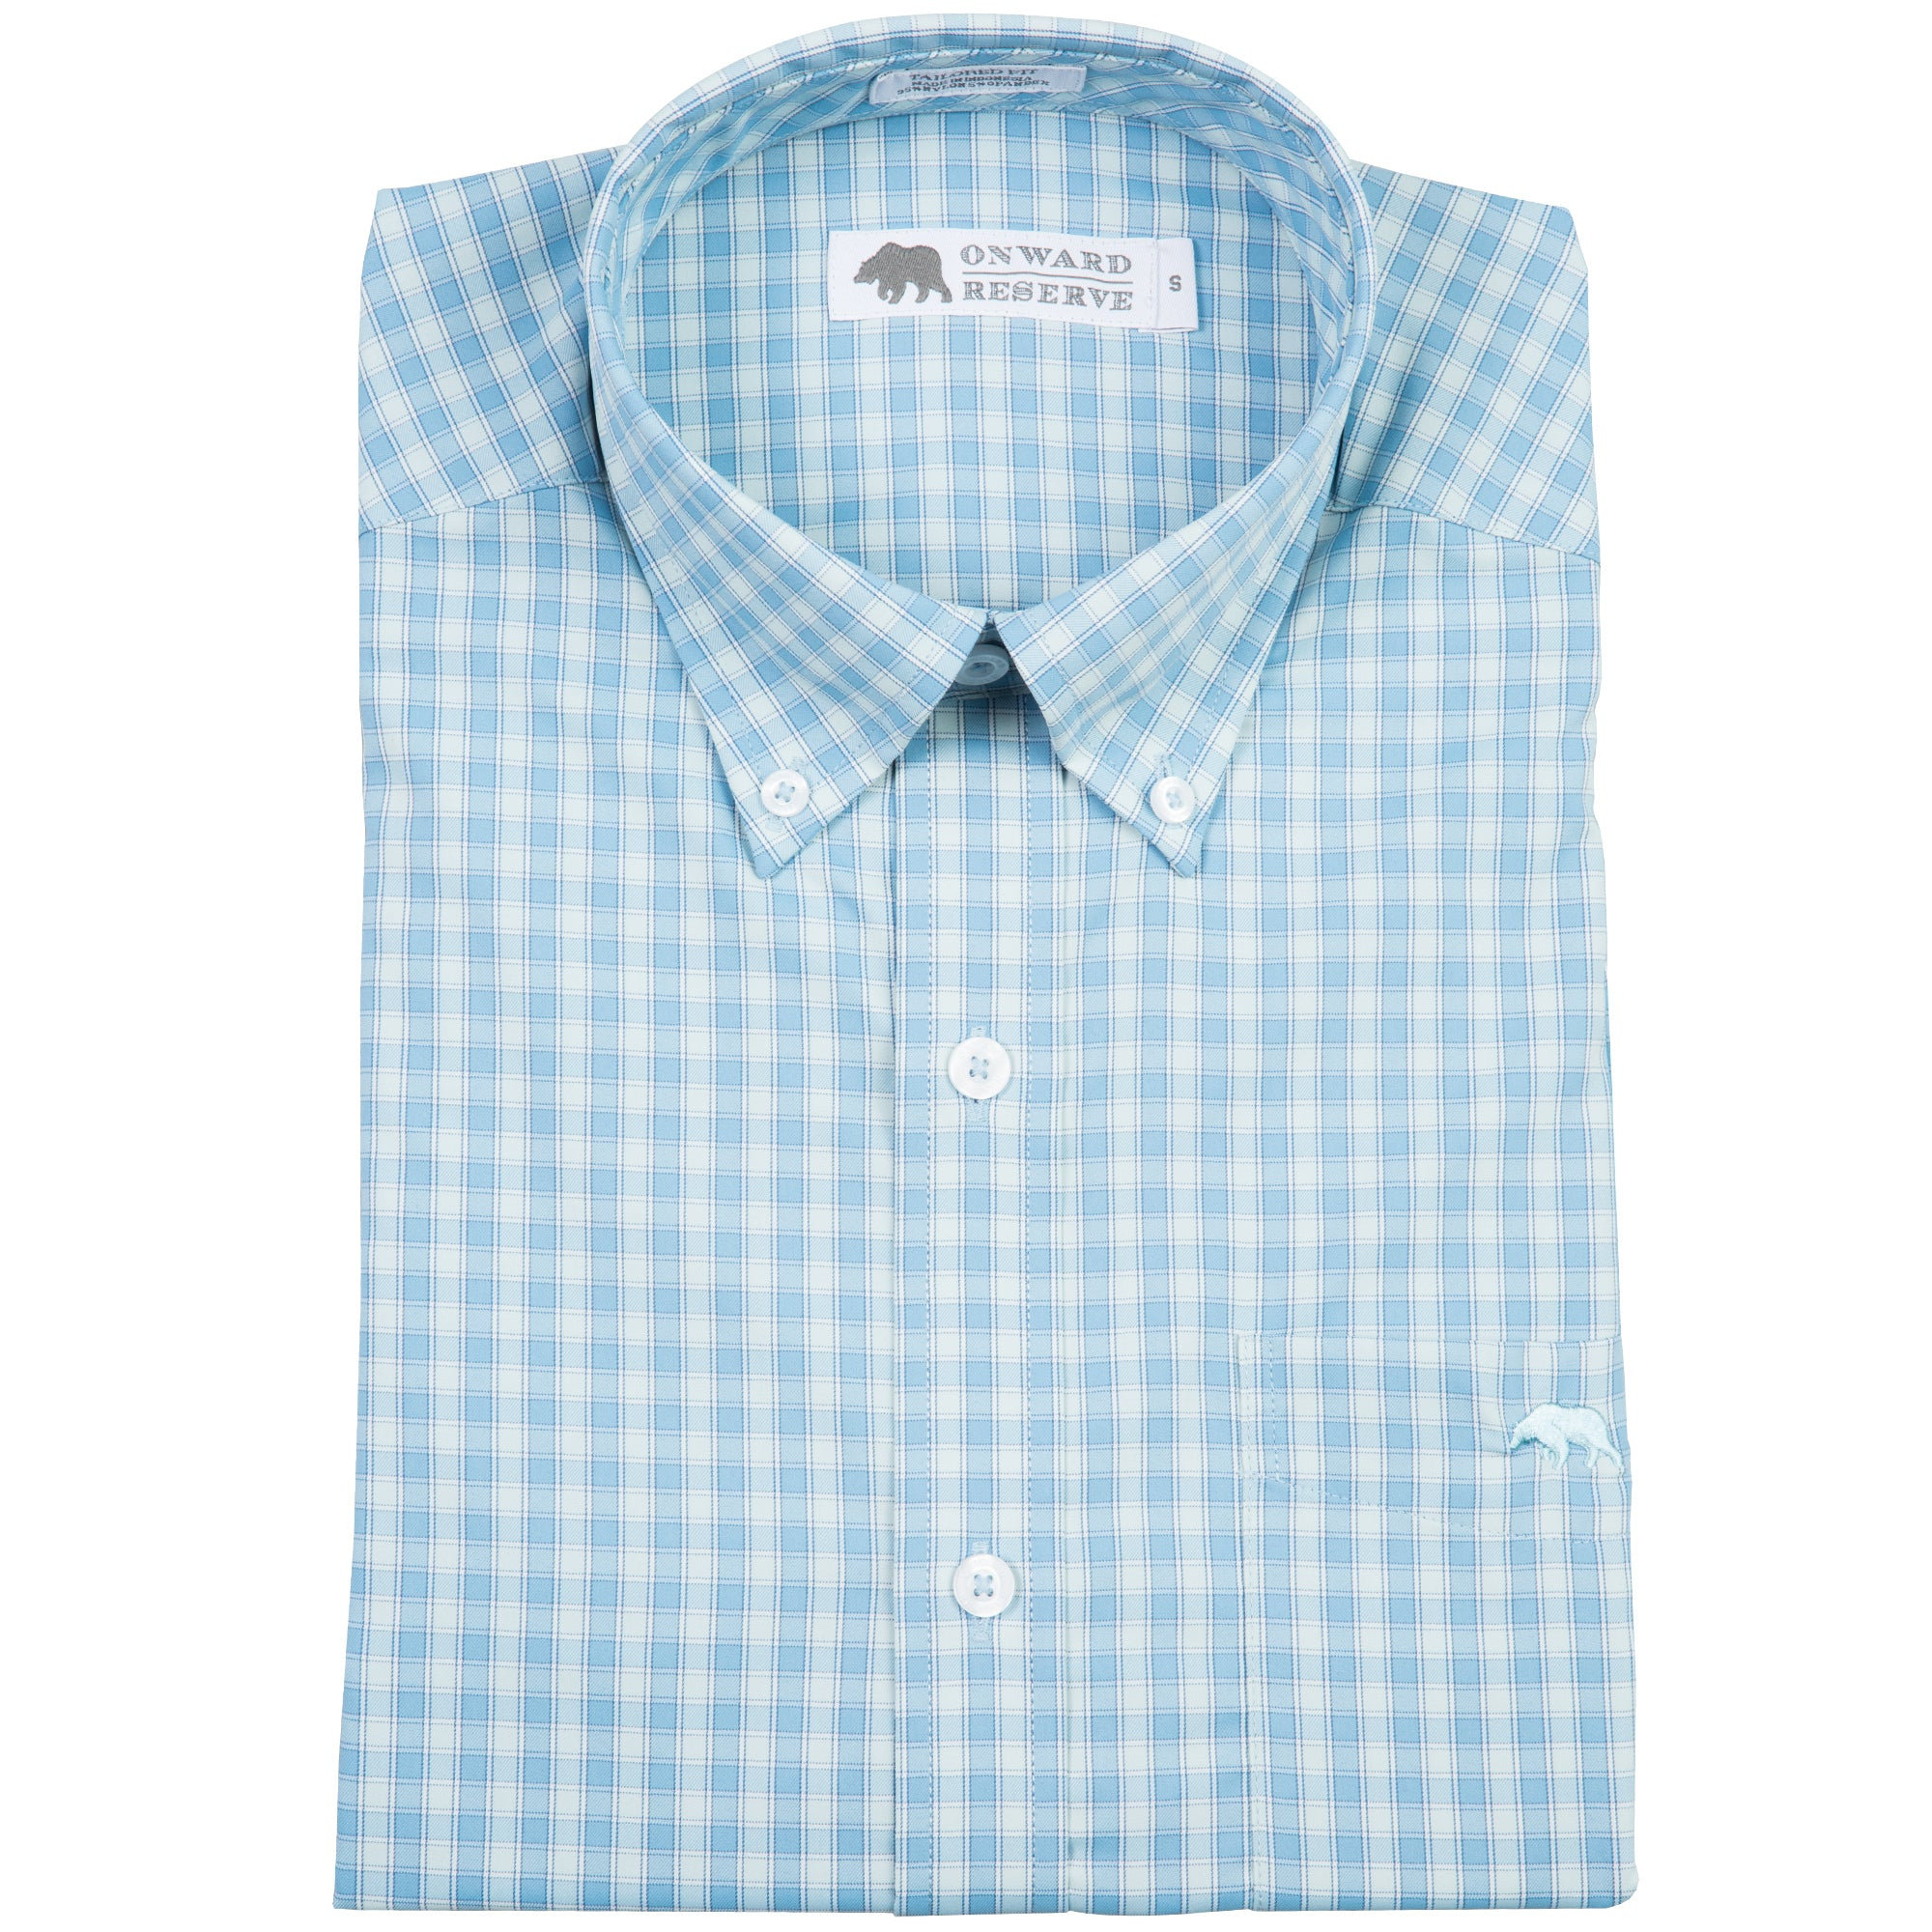 Scaly Tailored Fit Performance Button Down - OnwardReserve